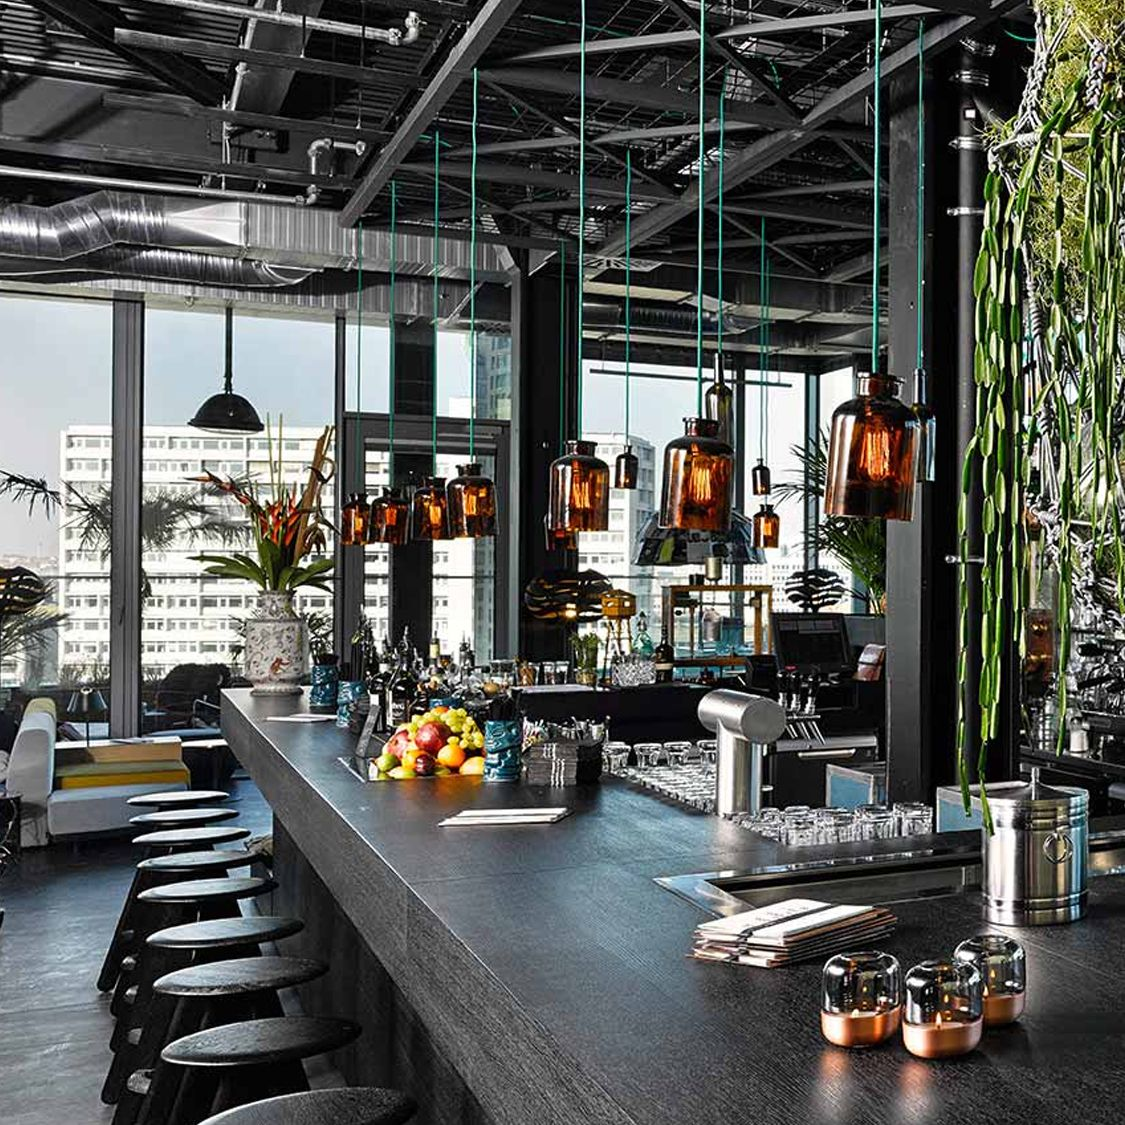 Monkey Bar By 25hours Hotel Bikini Berlin Berlin One Of The Best Hotel Bar In Berlin Learn More At Vossy Com Bar Berlin Grange Restaurant Deco A Table